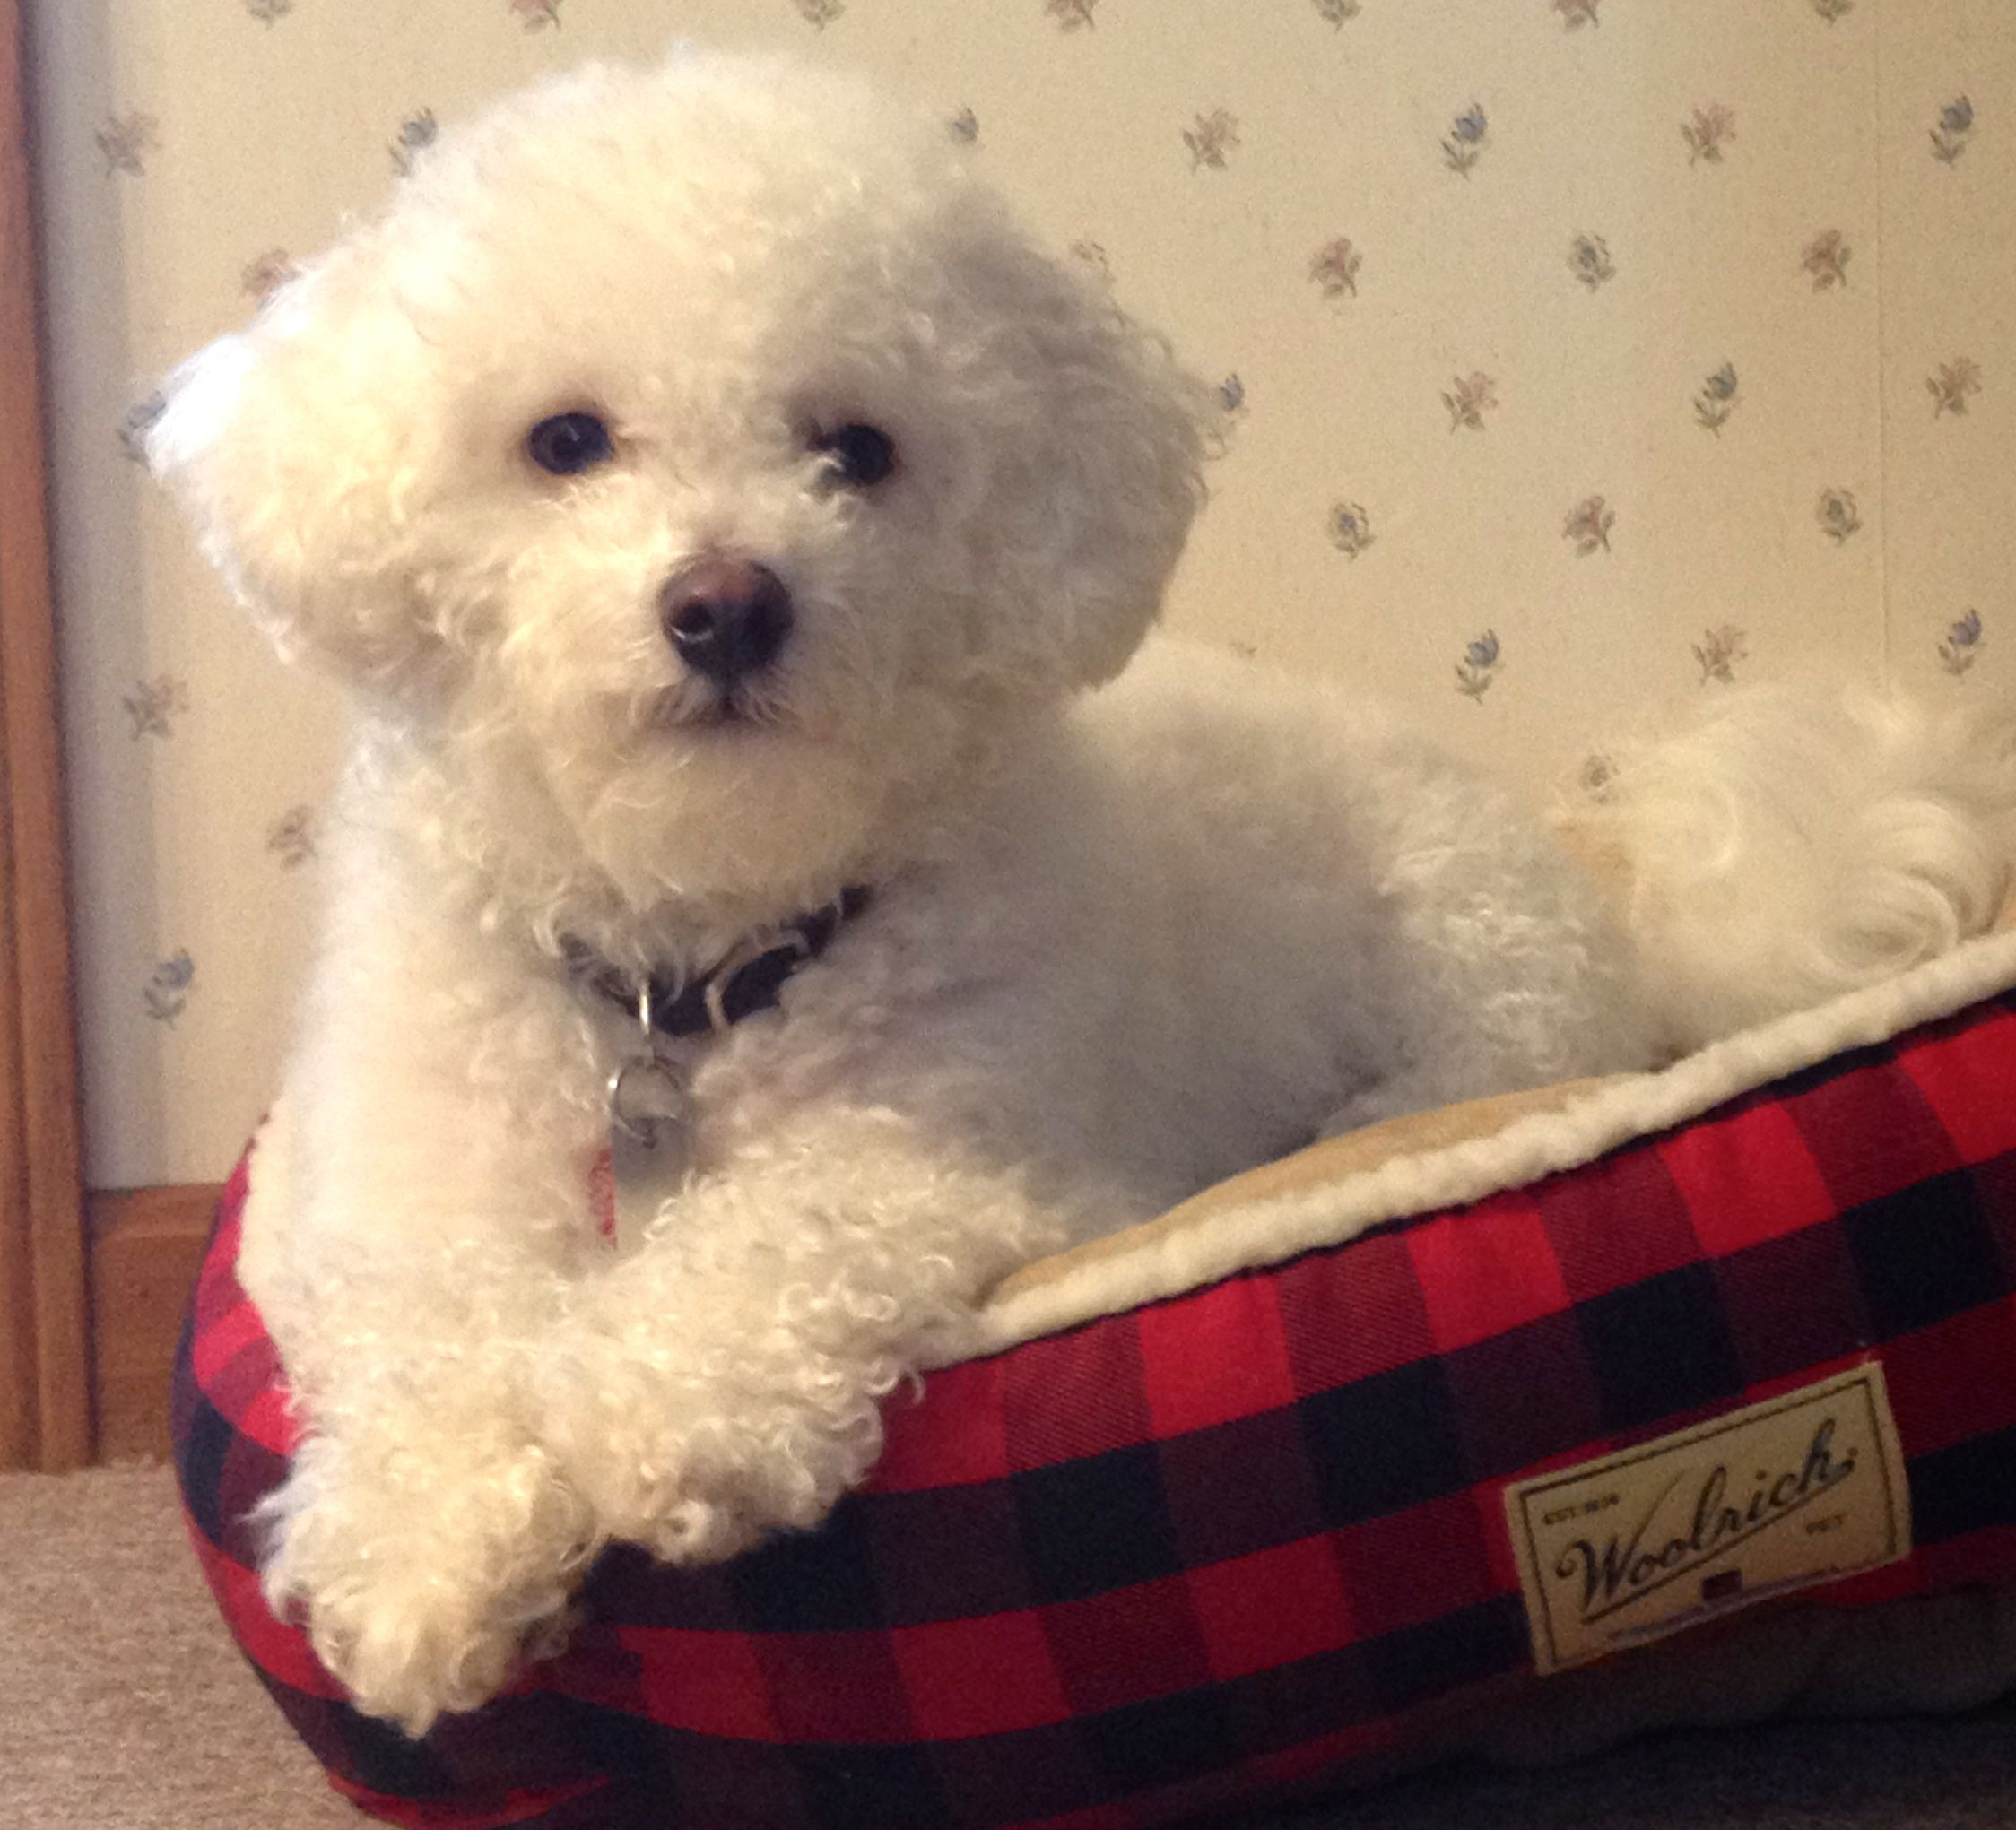 This Is Aspen Our Little Bichon Frise Who Is The Inspiration To